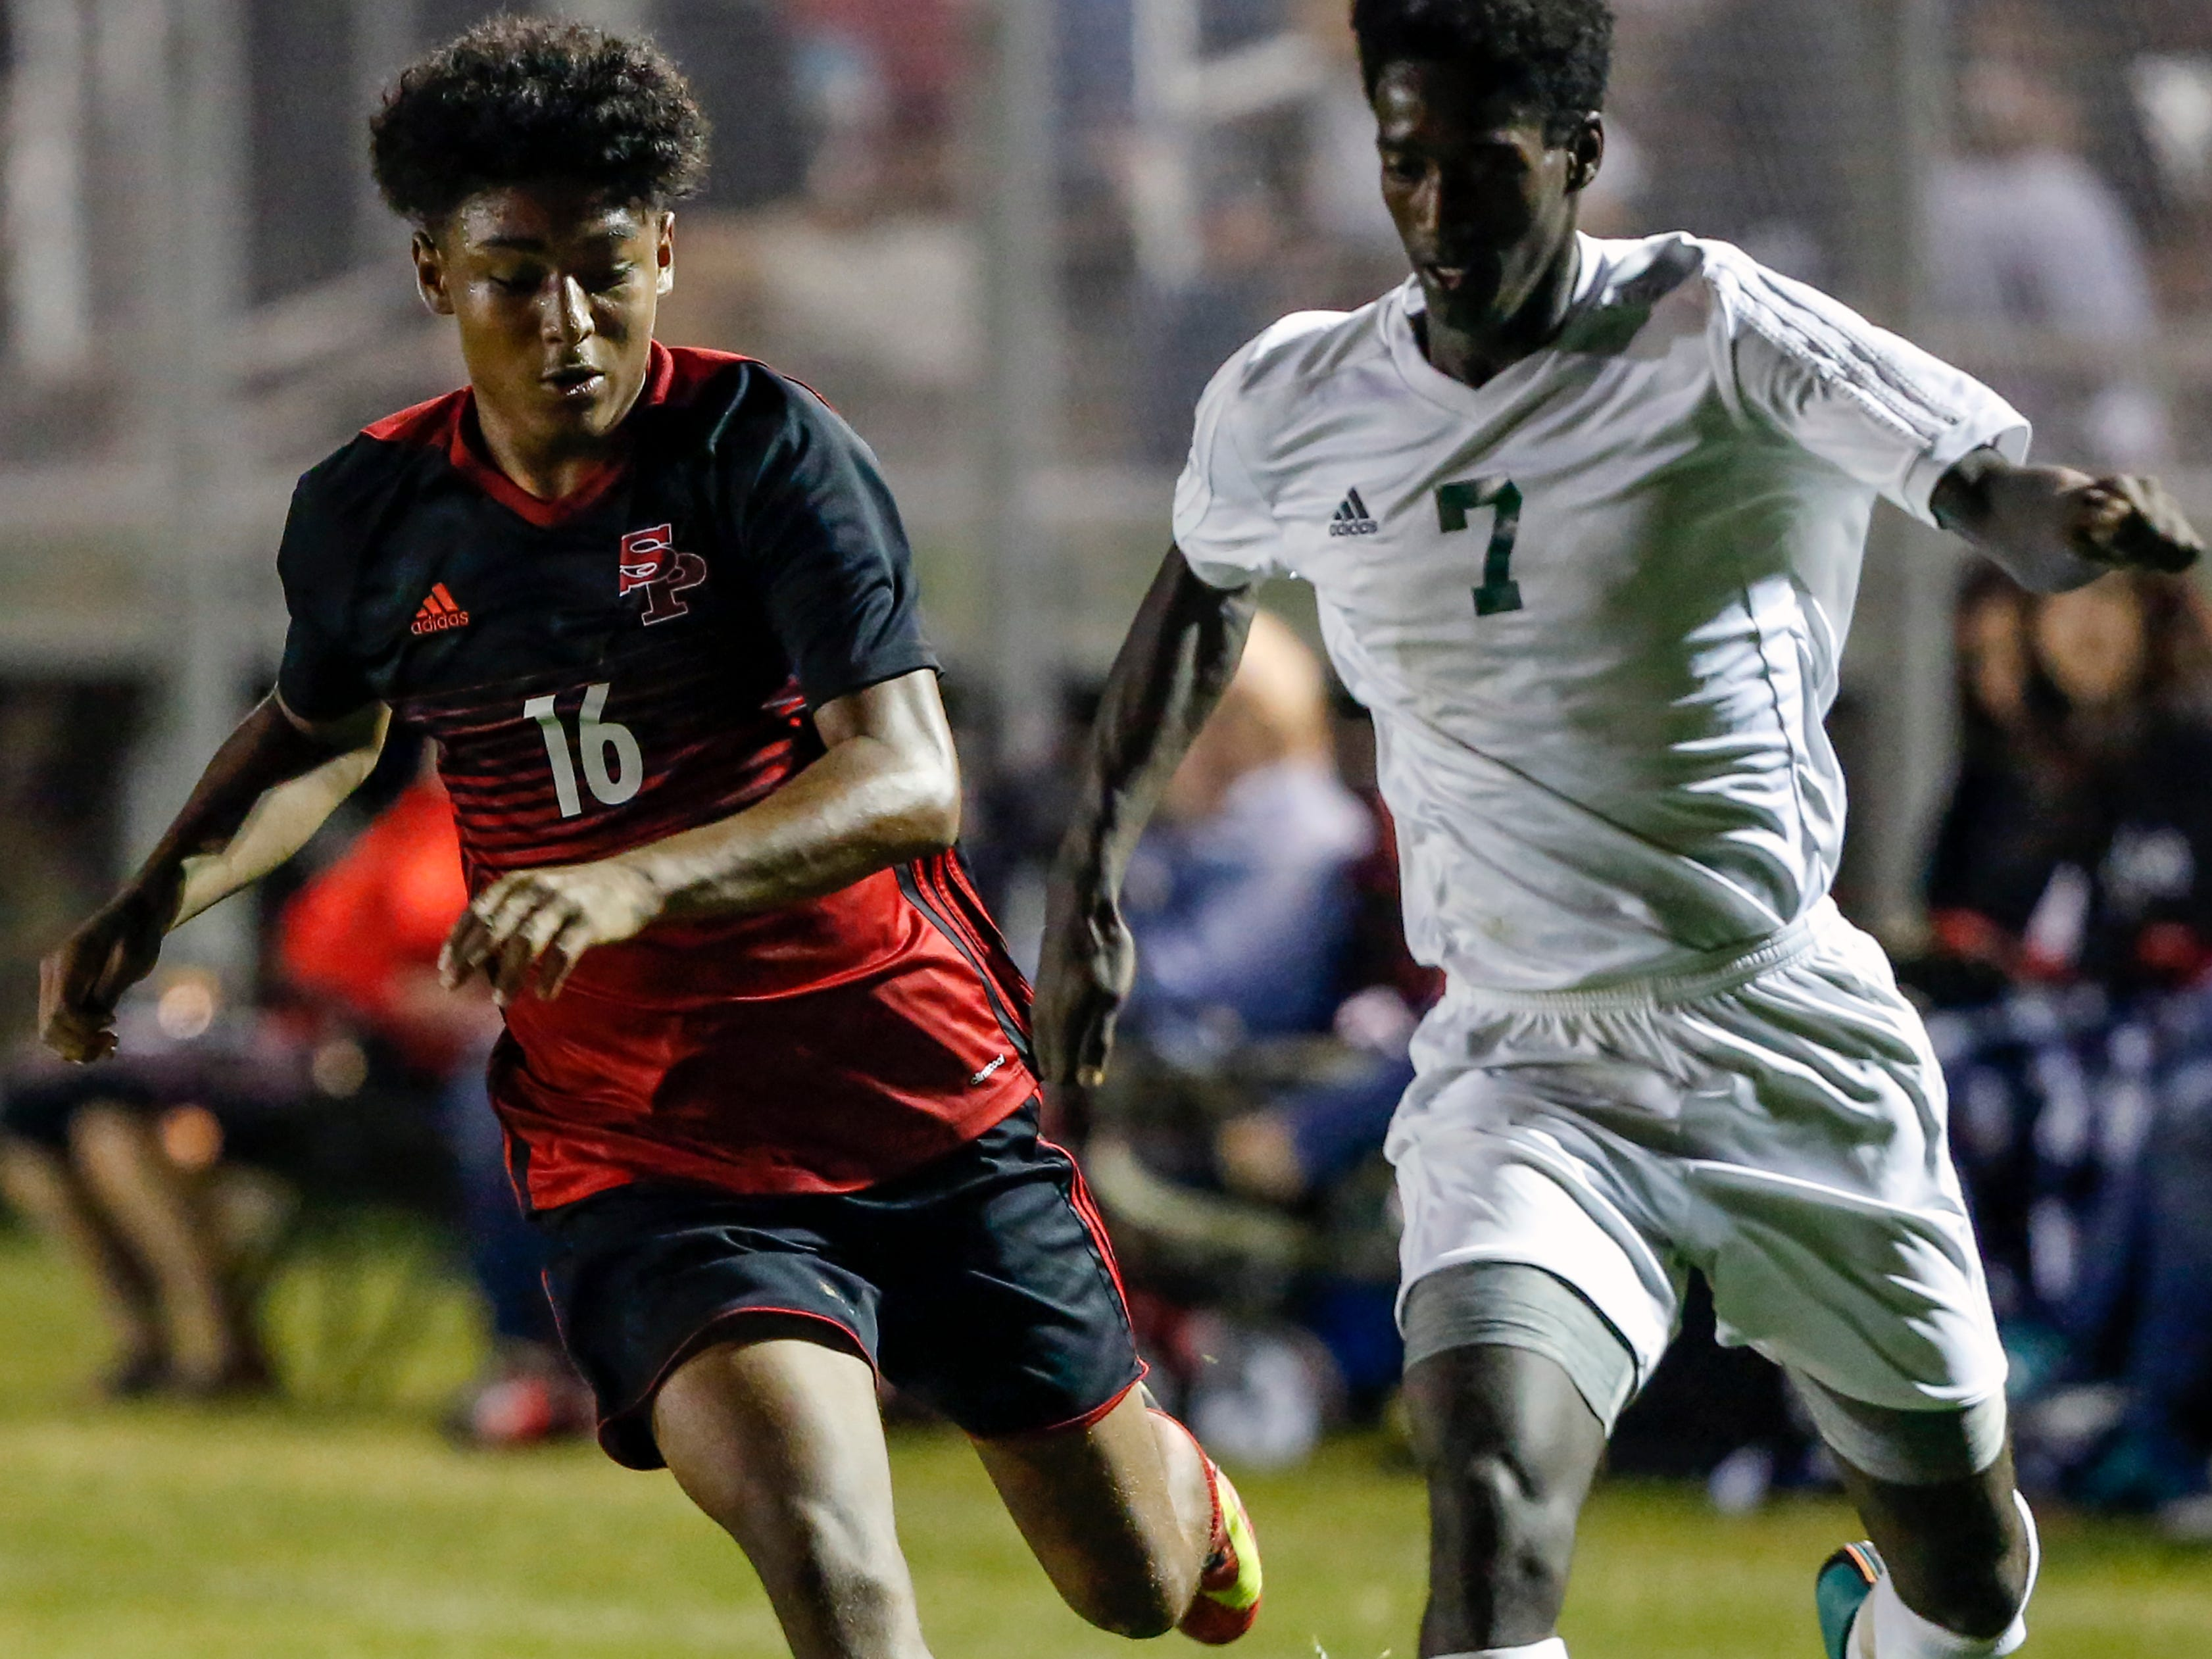 SPASH player Lio Perkins chases D.C. Everest player Tamirat Knutson during a soccer game between SPASH and D.C. Everest in Stevens Point, Wis., September 13, 2018.